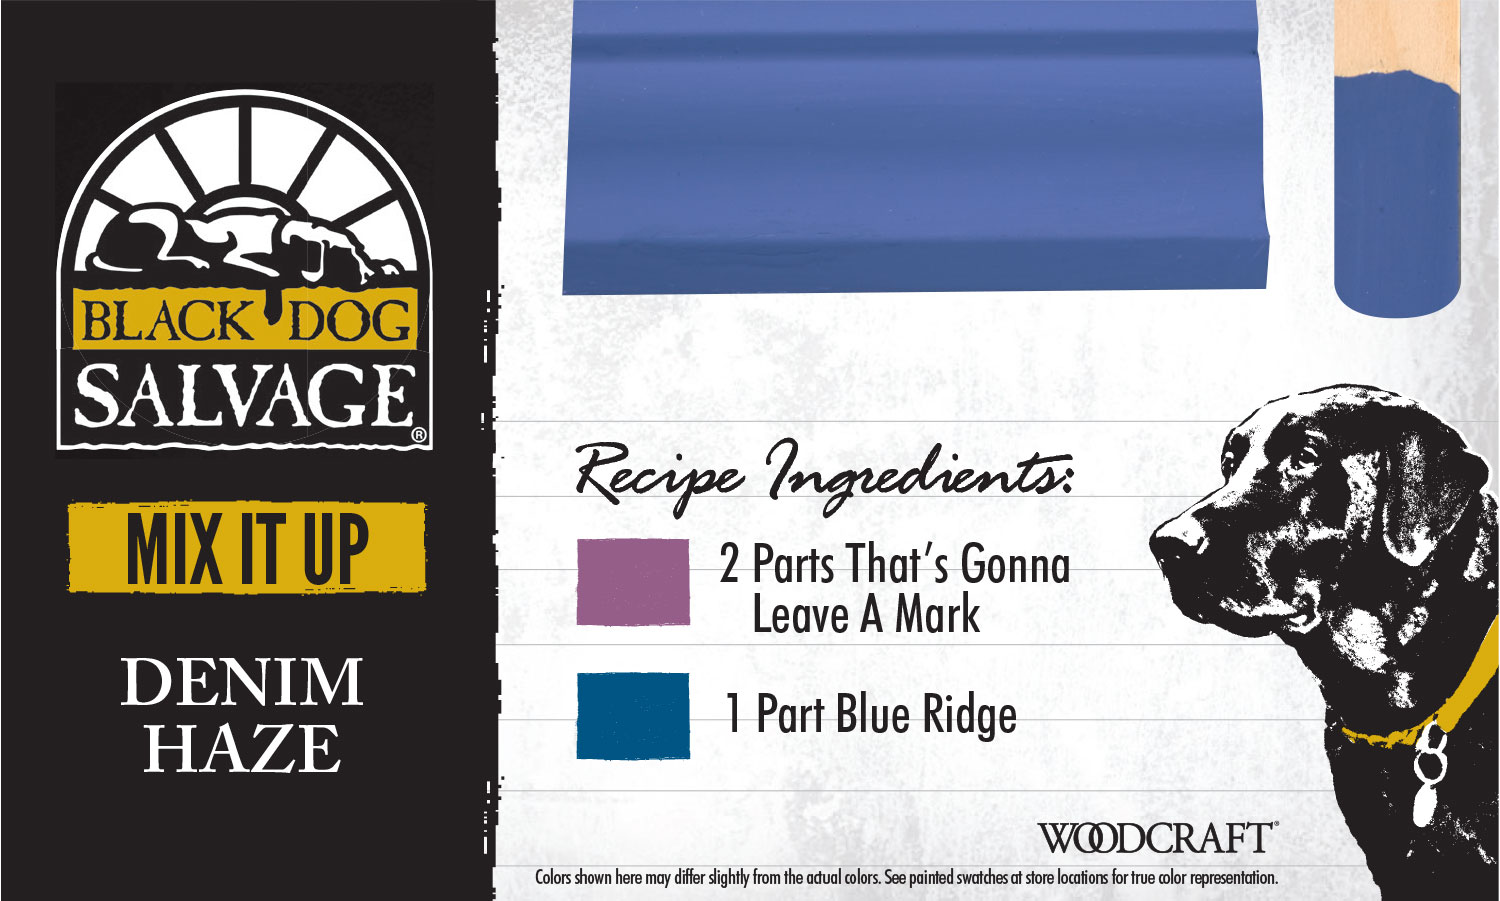 """""""Denim Haze"""" is made from 2 Parts """"That's Gonna Leave A Mark"""" and 1 Part """"Blue Ridge"""""""